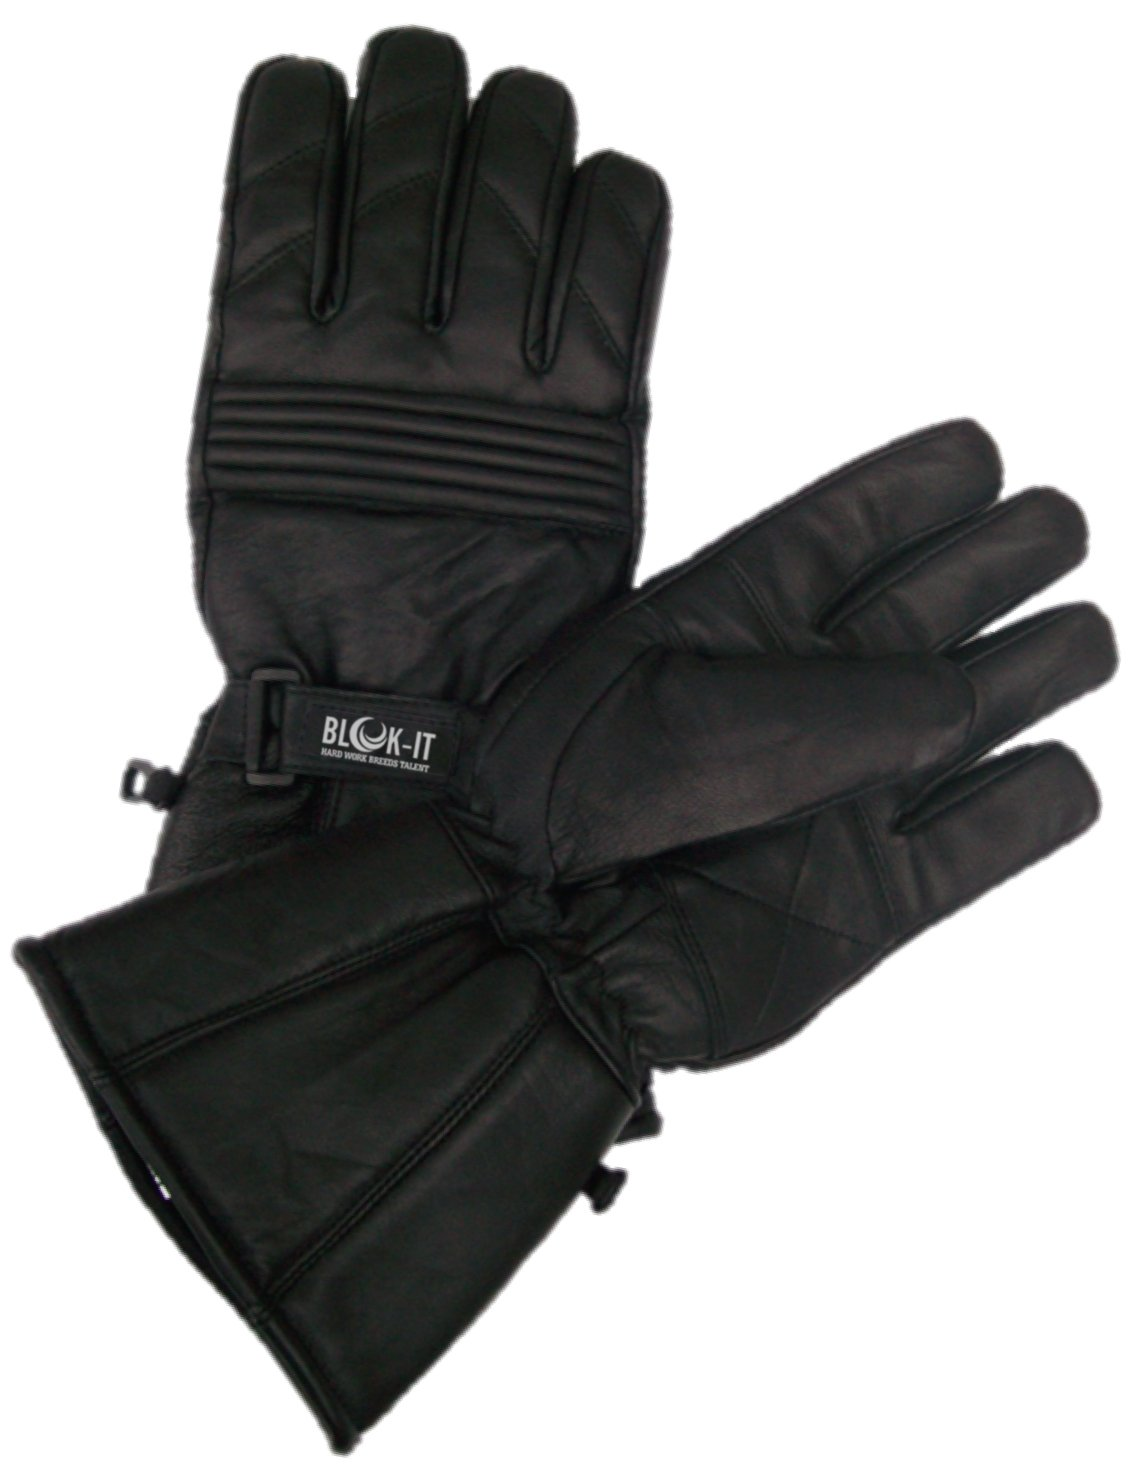 Motorcycle gloves cruiser - The Blok It Motorcycle Gloves Are A Great Pair Of Full Coverage Gloves That Is Designed From All Leather Material This Thick Material Is Perfect For